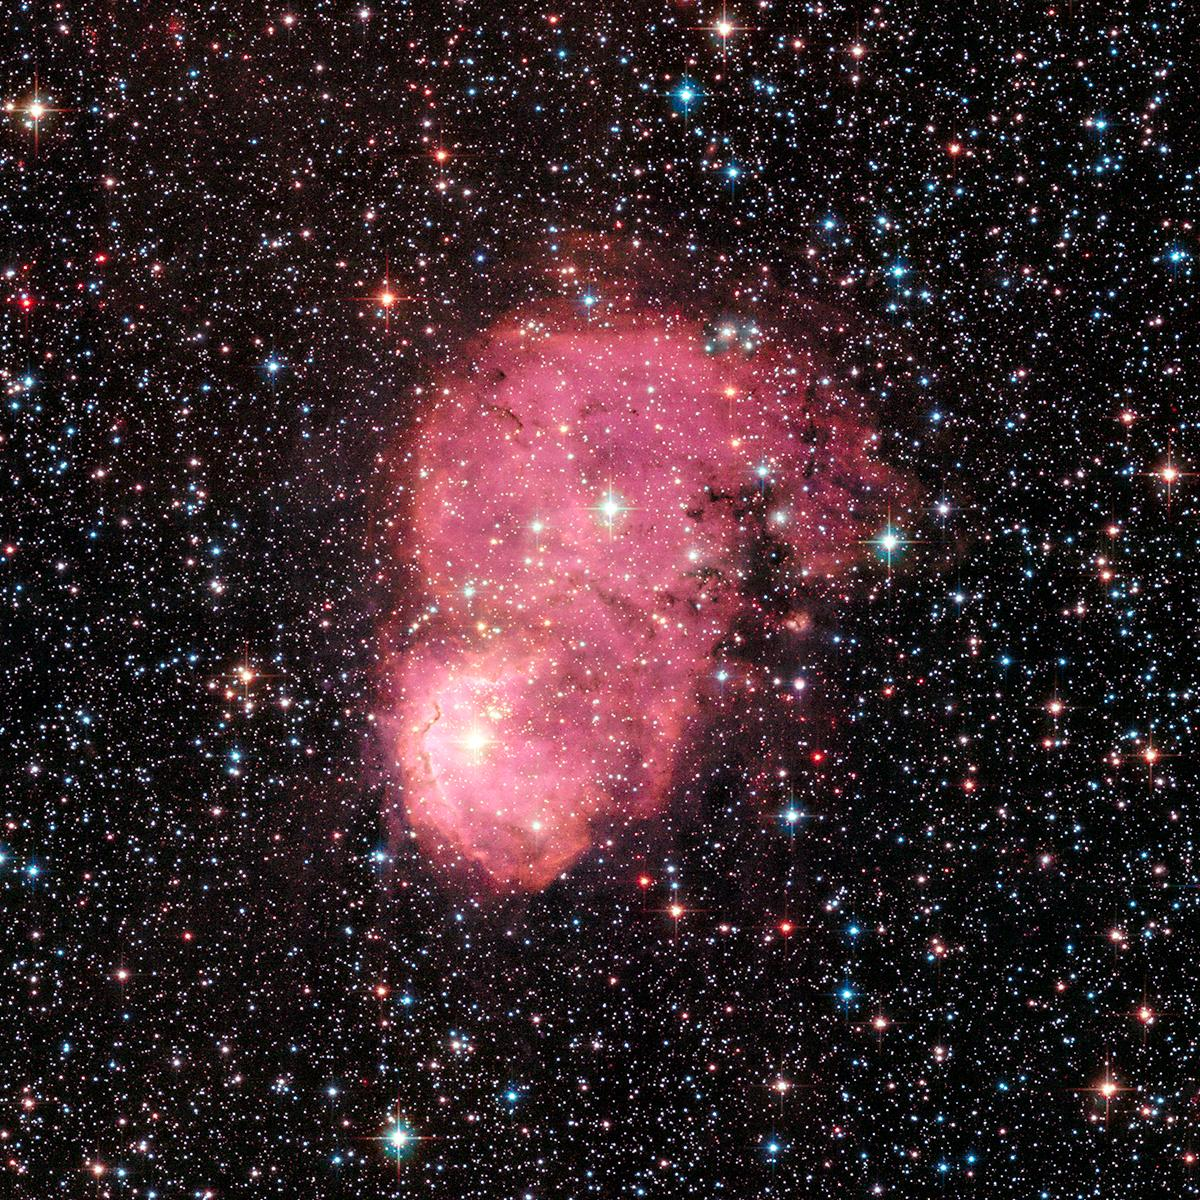 Hubble Space Telescope Photographs NGC 248 — A Pair Of Glowing Hydrogen Nebulae In The Small Magellanic Cloud